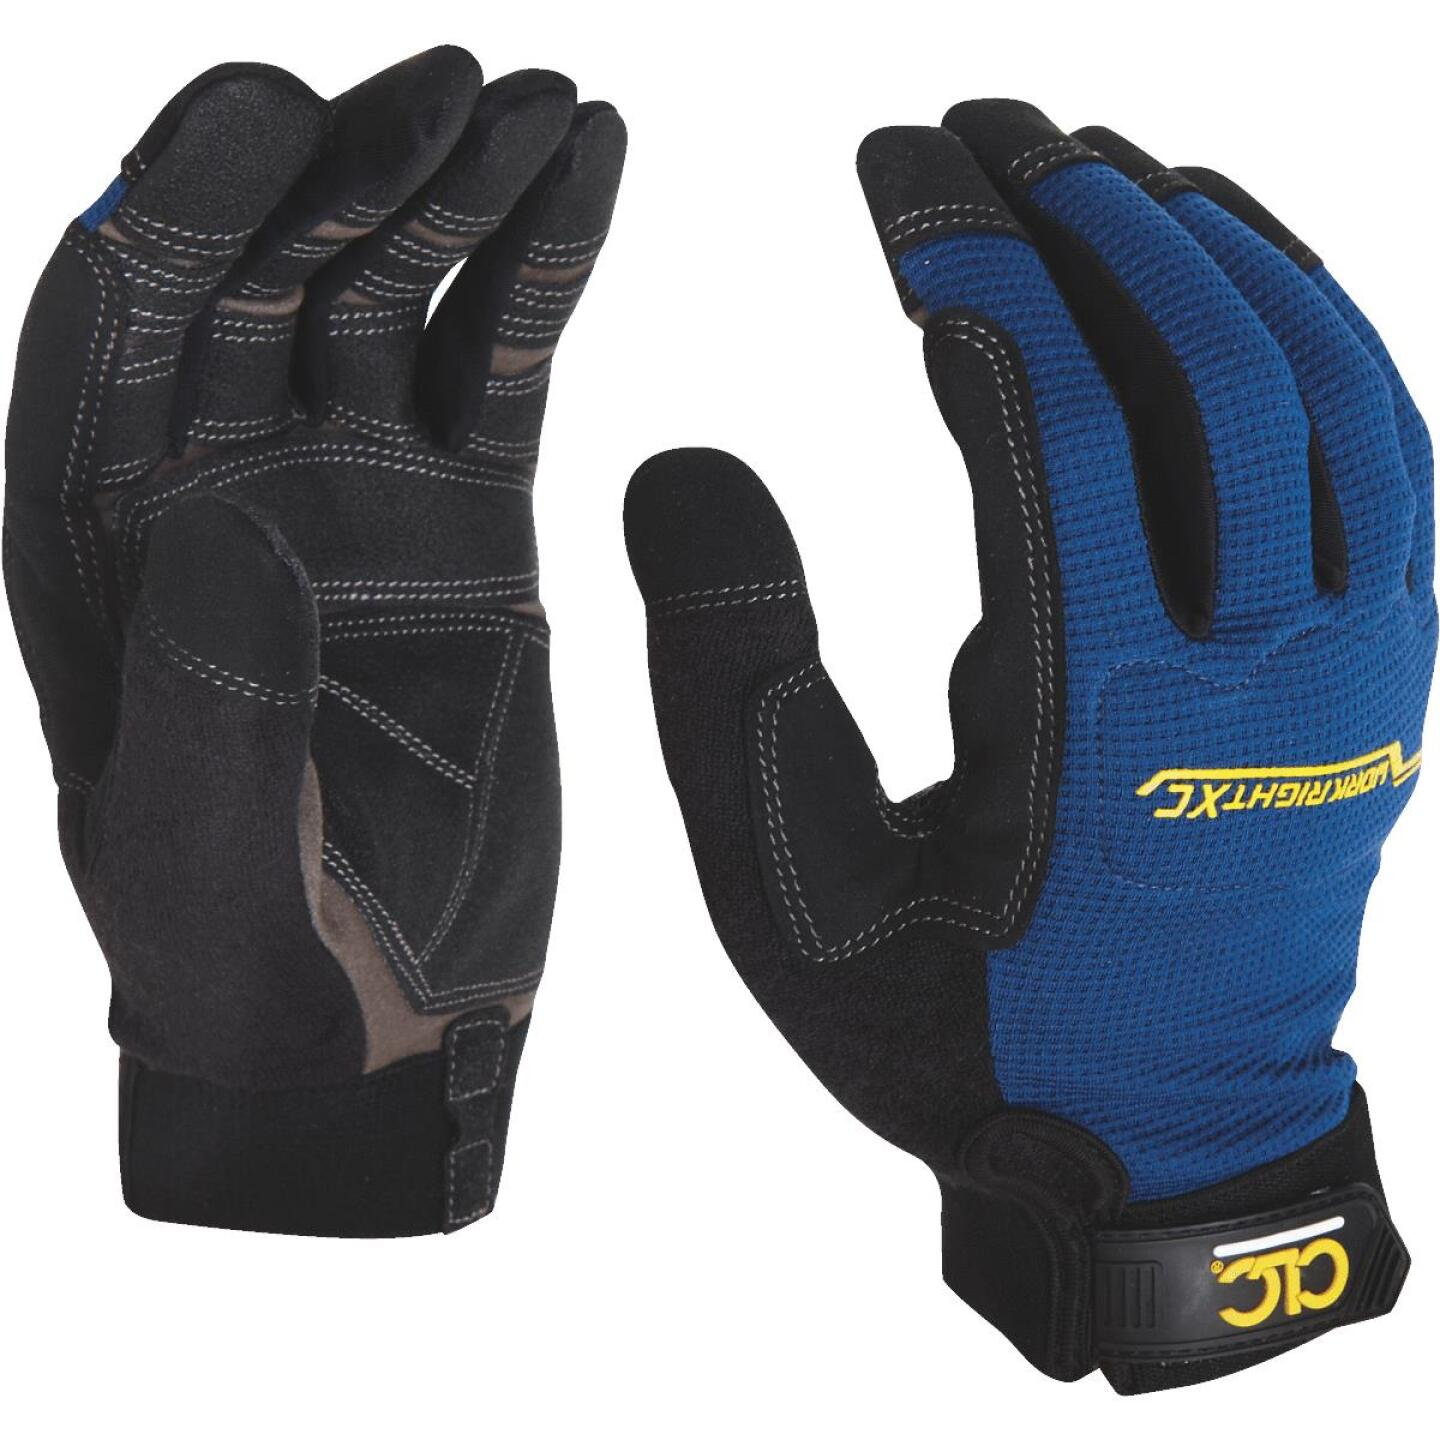 CLC Workright XC Men's XL Synthetic Leather Flex Grip High Performance Glove Image 3